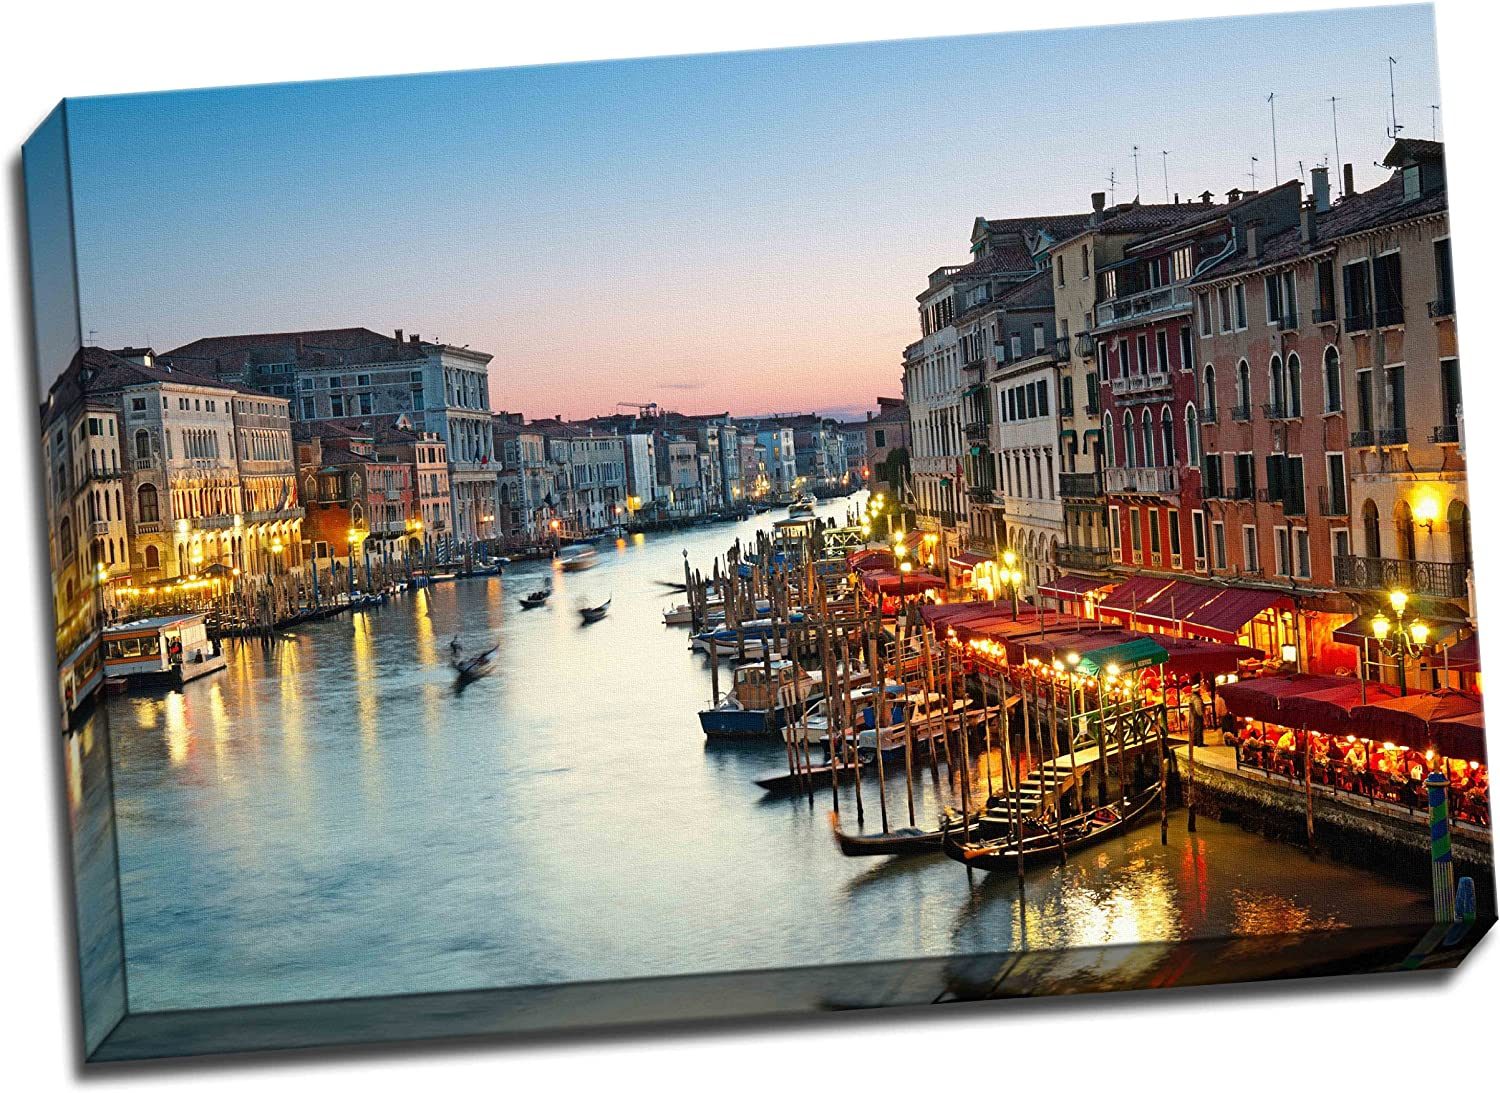 Venice Canvas Grand Canal After Sunset Art Print Picture Wall Art 30 X 20 Inches Amazon Co Uk Kitchen Home